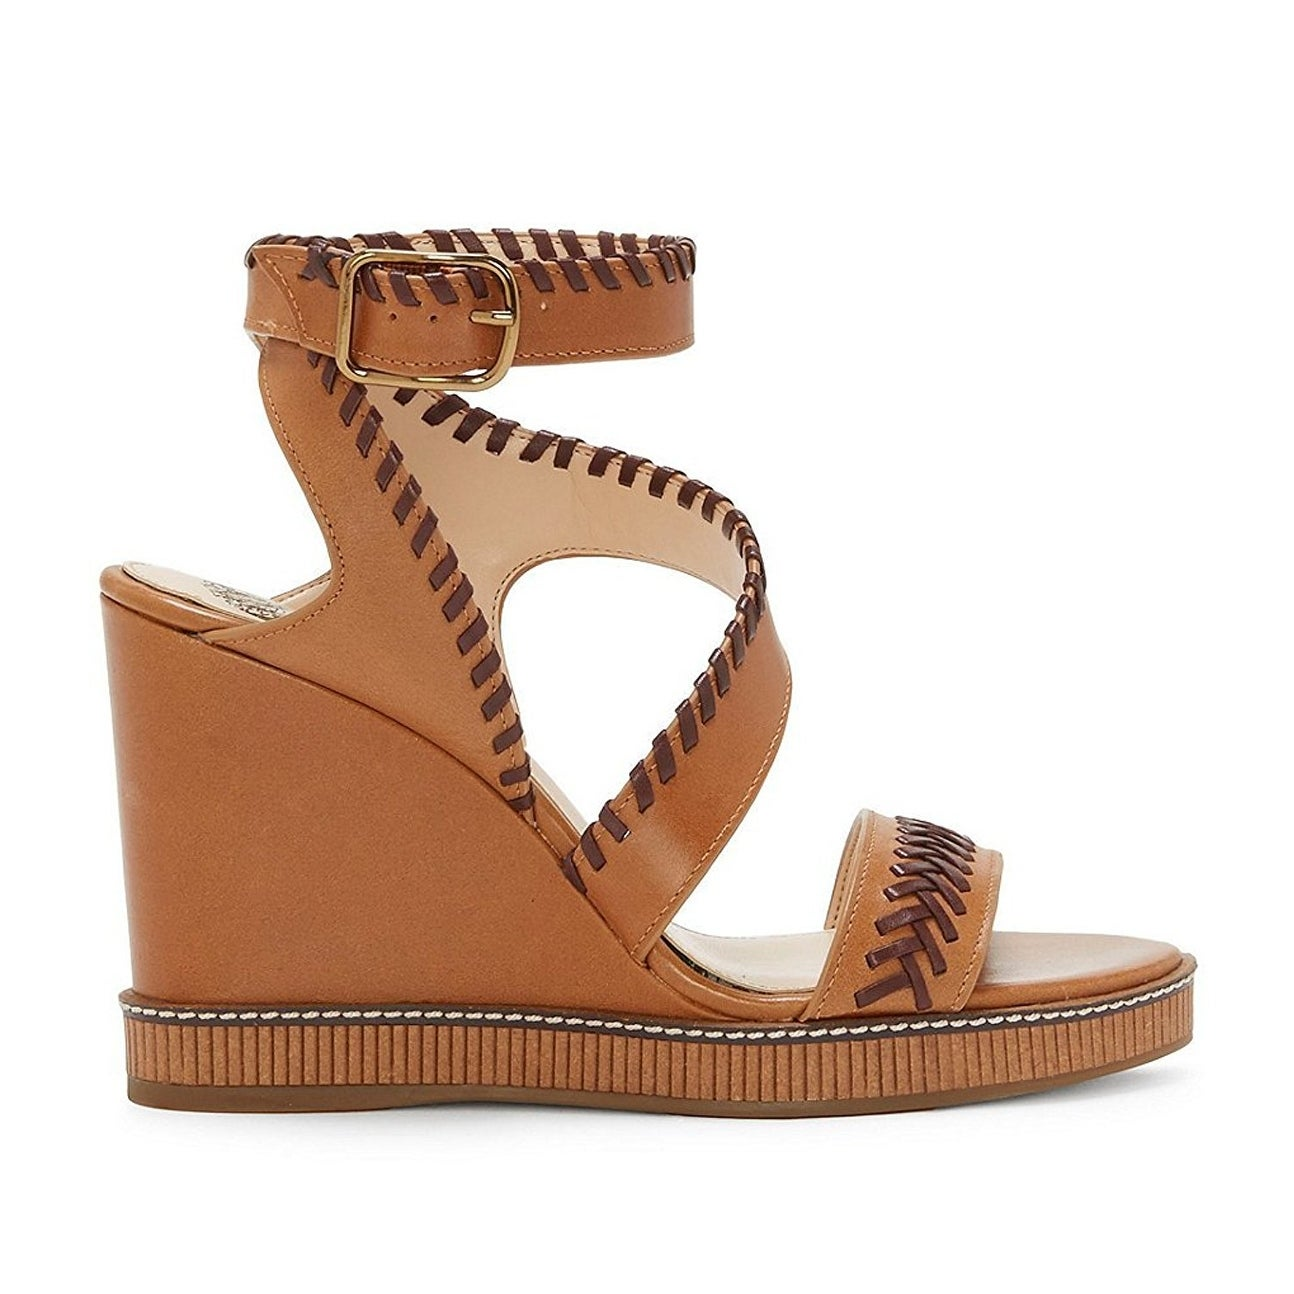 450924dae11c Shop Vince Camuto Womens Ivanta Leather Open Toe Casual Platform Sandals -  Free Shipping Today - Overstock - 19879613